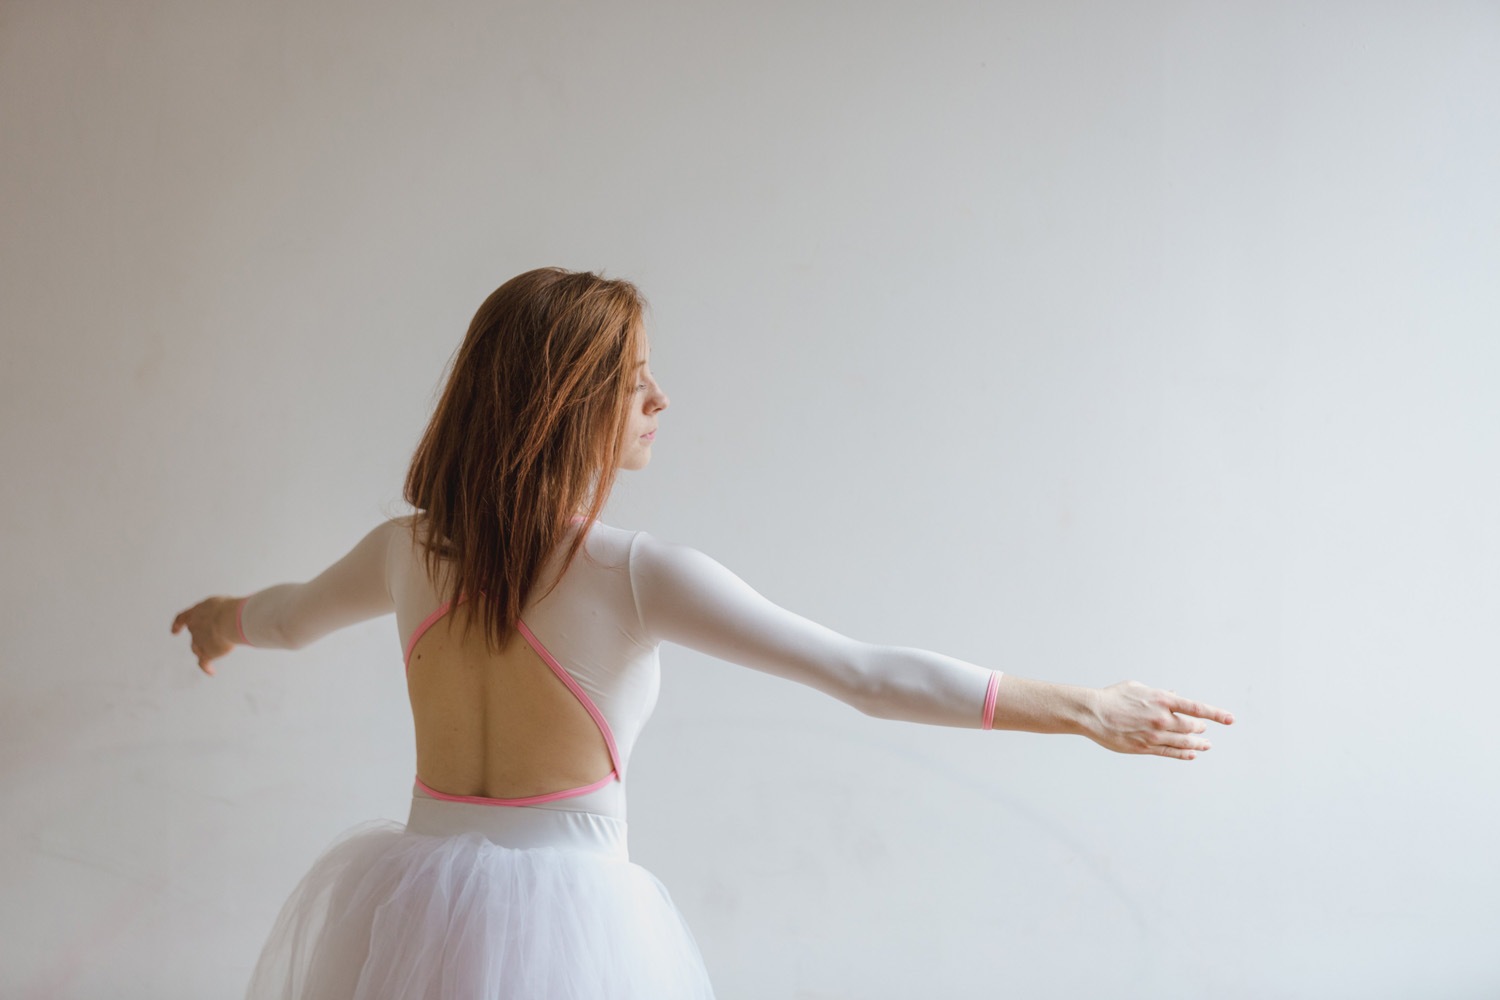 woman dancing ballet in a leotard and tutu skirt with her arms open